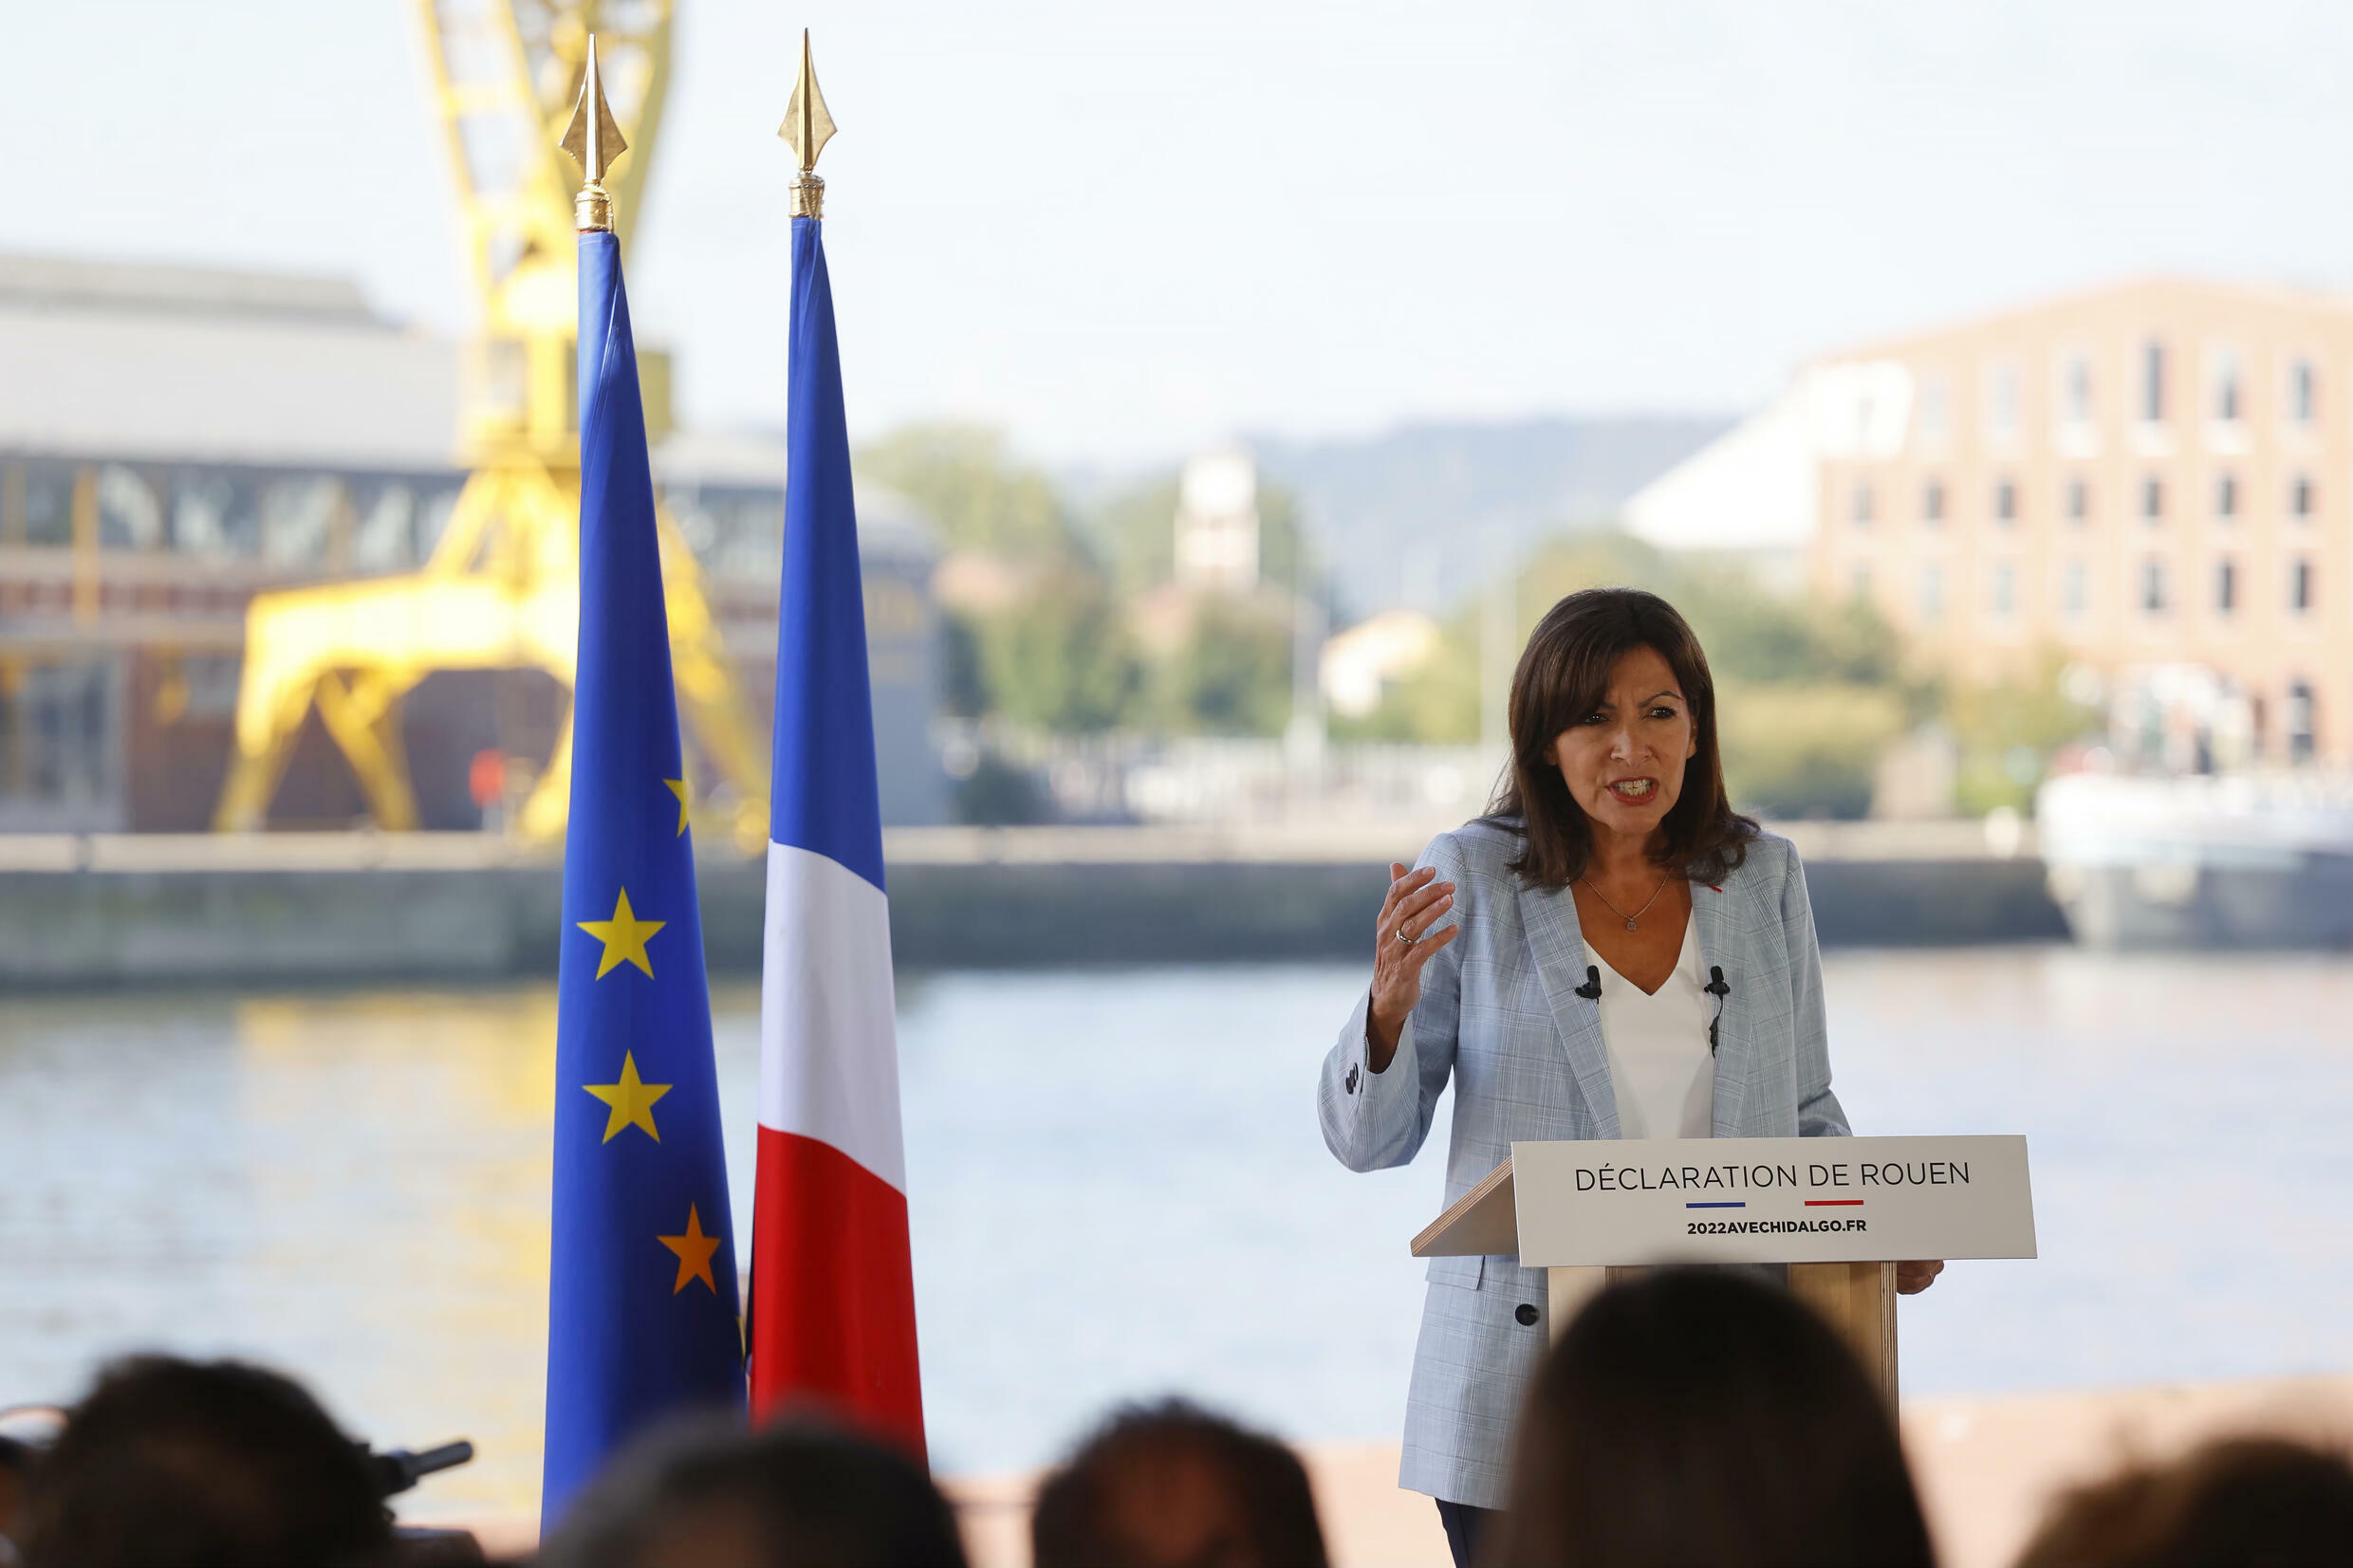 Anne Hidalgo is the hot favourite to win the nomination of the Socialist party